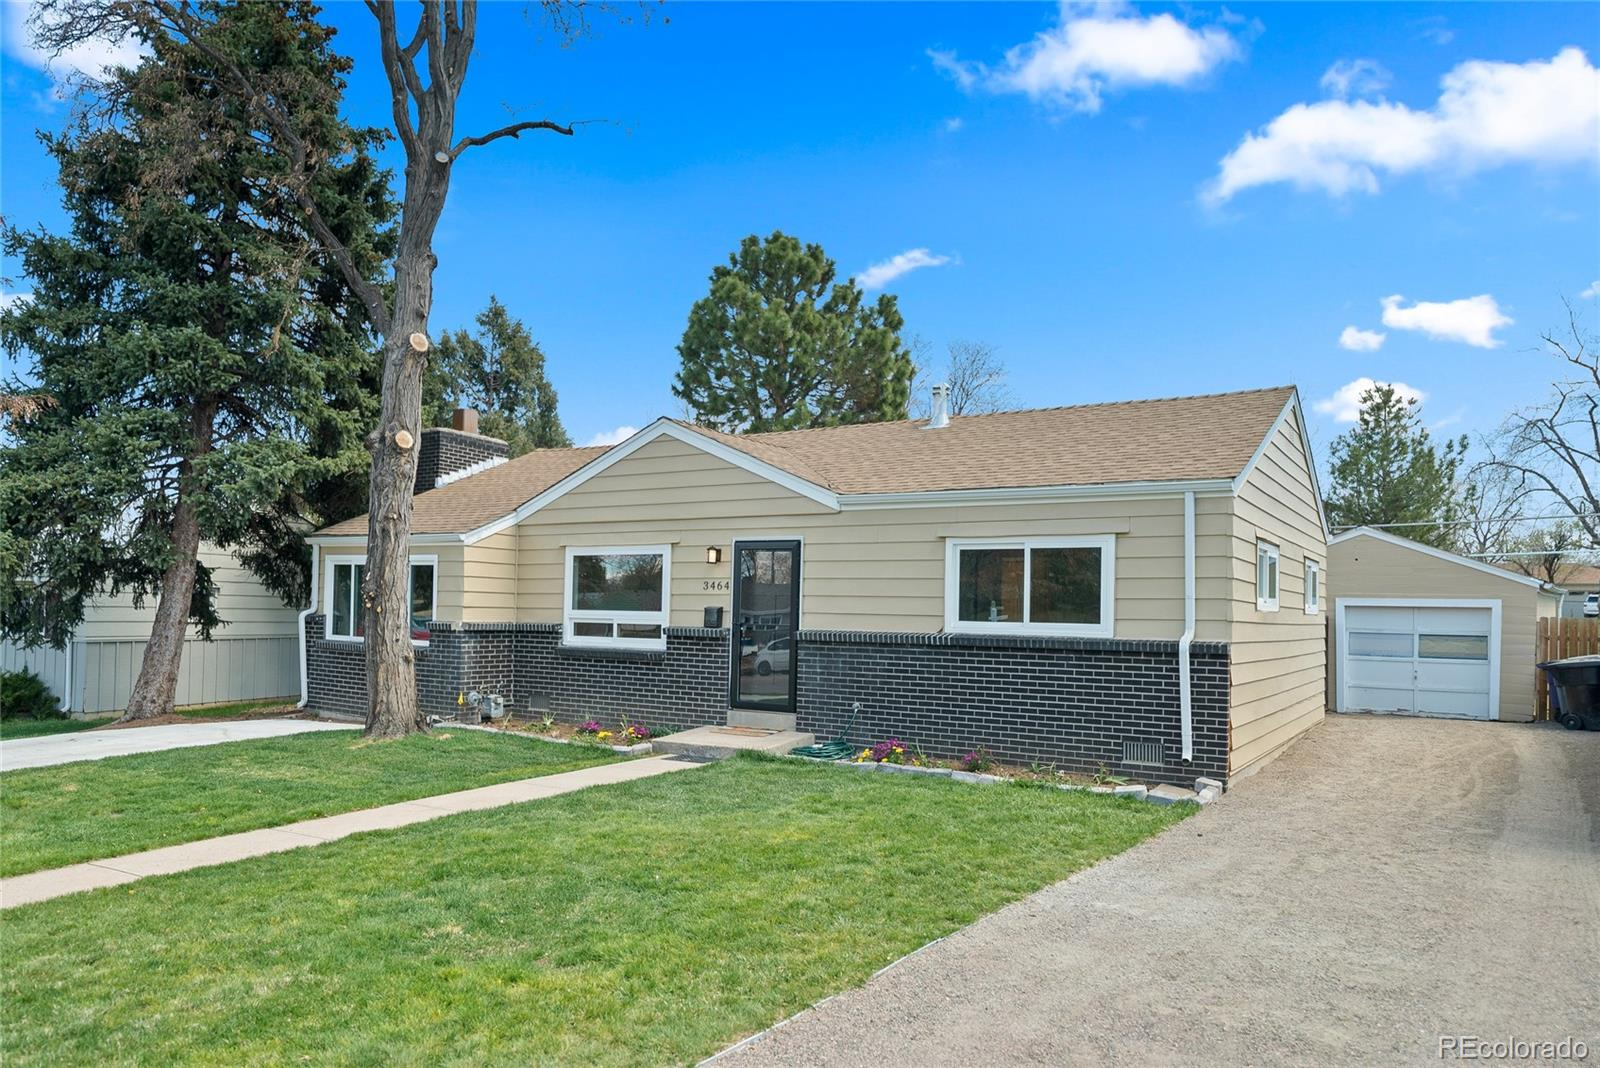 3464 S Holly Street Property Photo - Denver, CO real estate listing